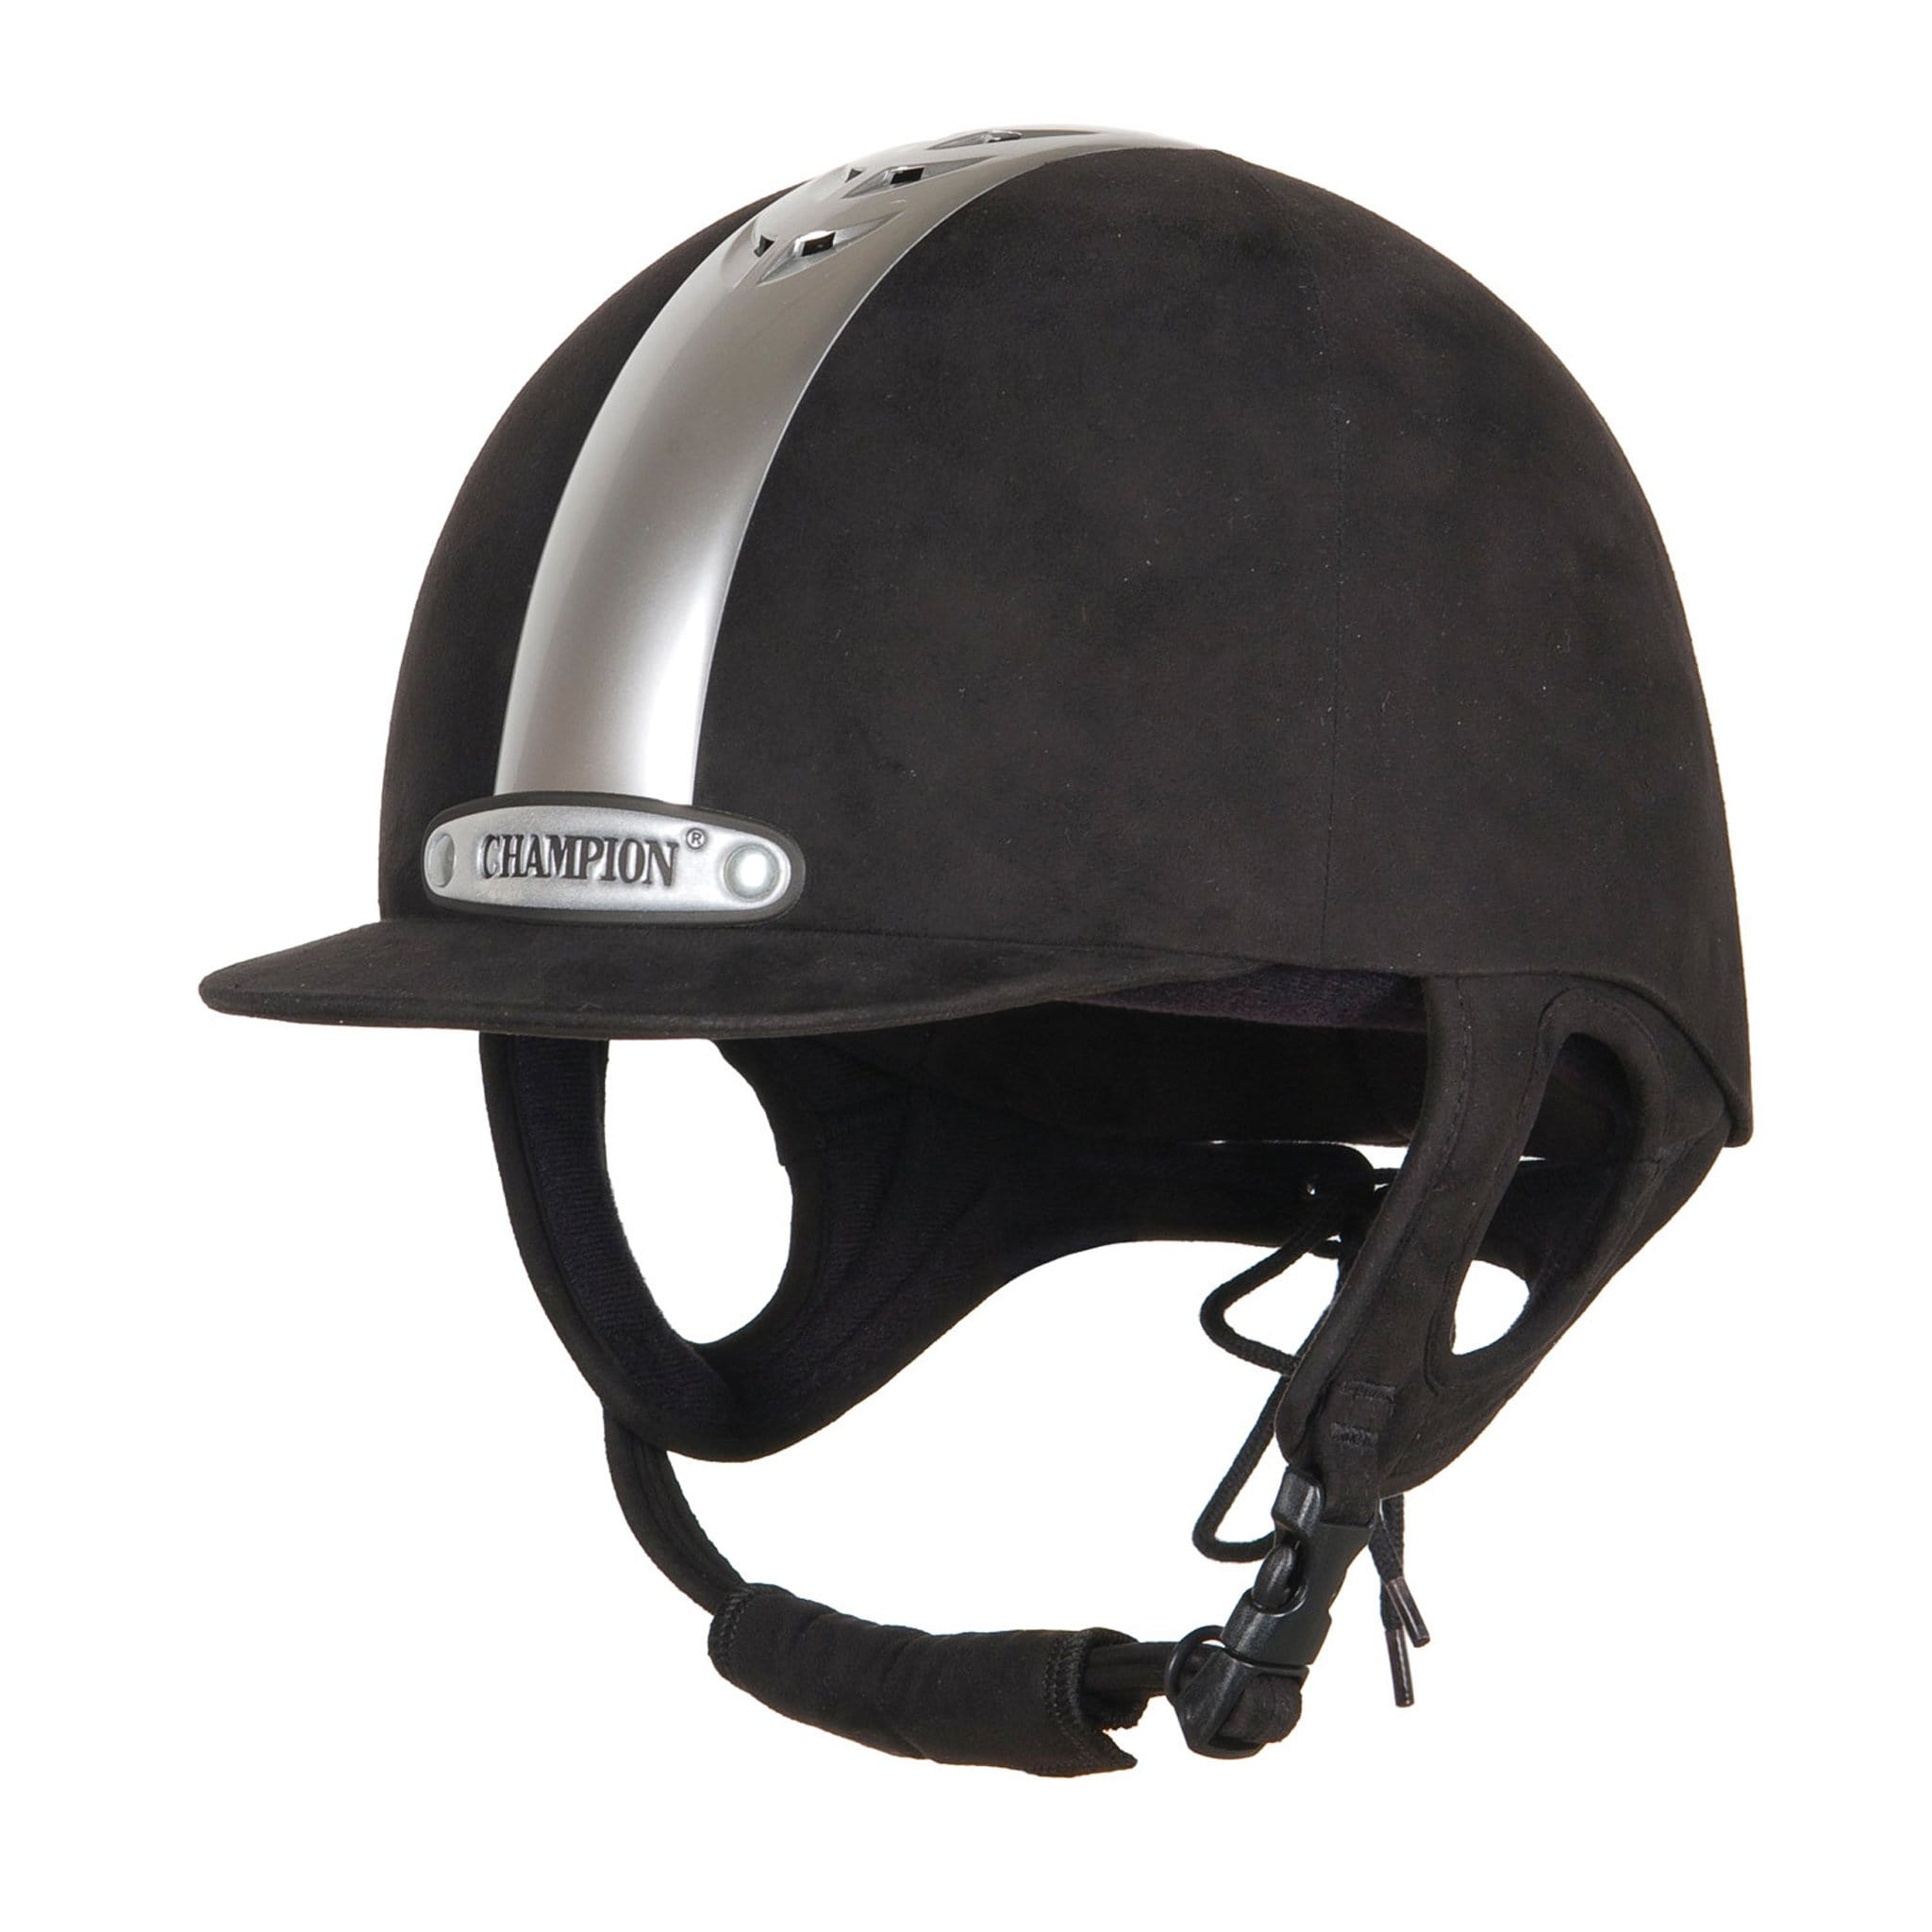 Champion Ventair Hat Black Left Side VENTAIR/BLACK/51CM.